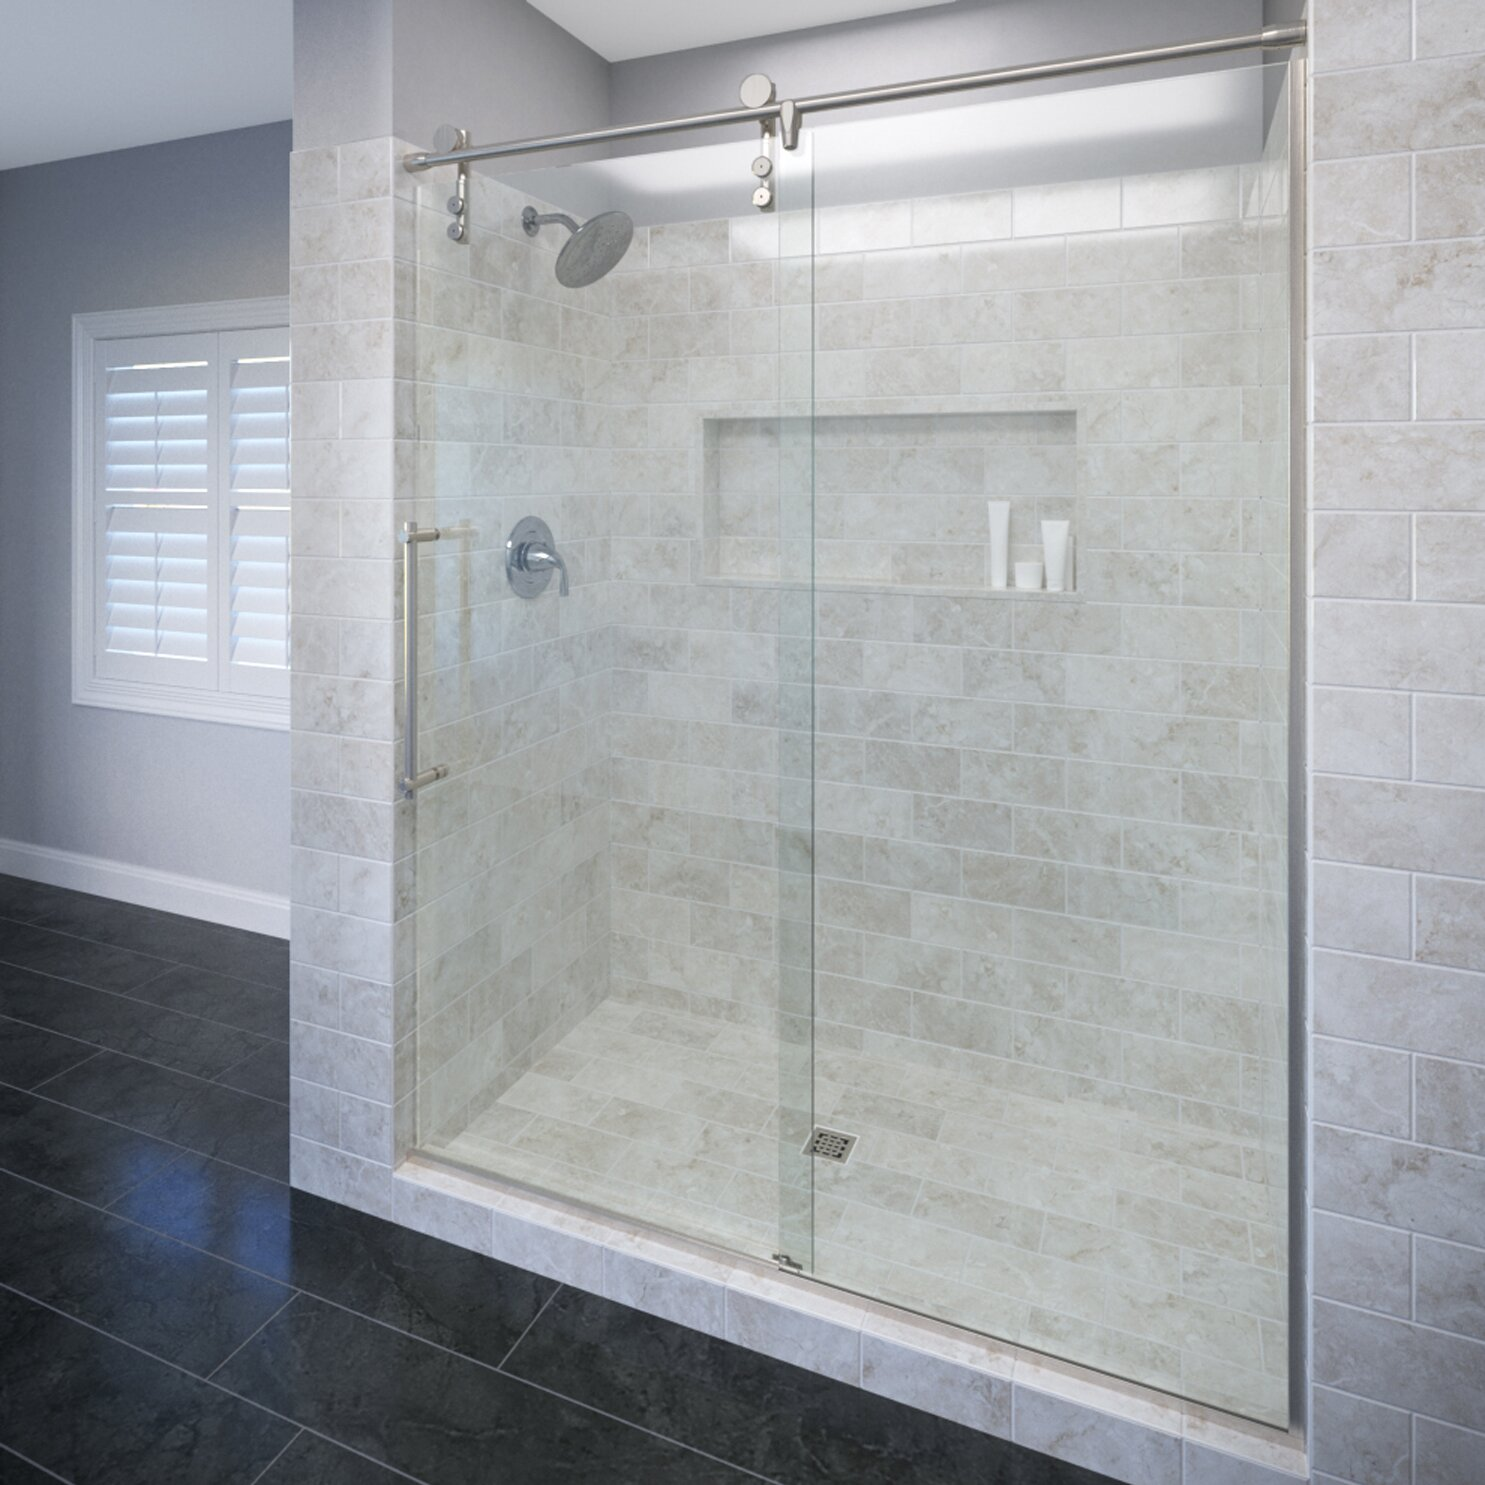 Basco Sliding Shower Doors Basco Infinity 58 1 2 In X 70